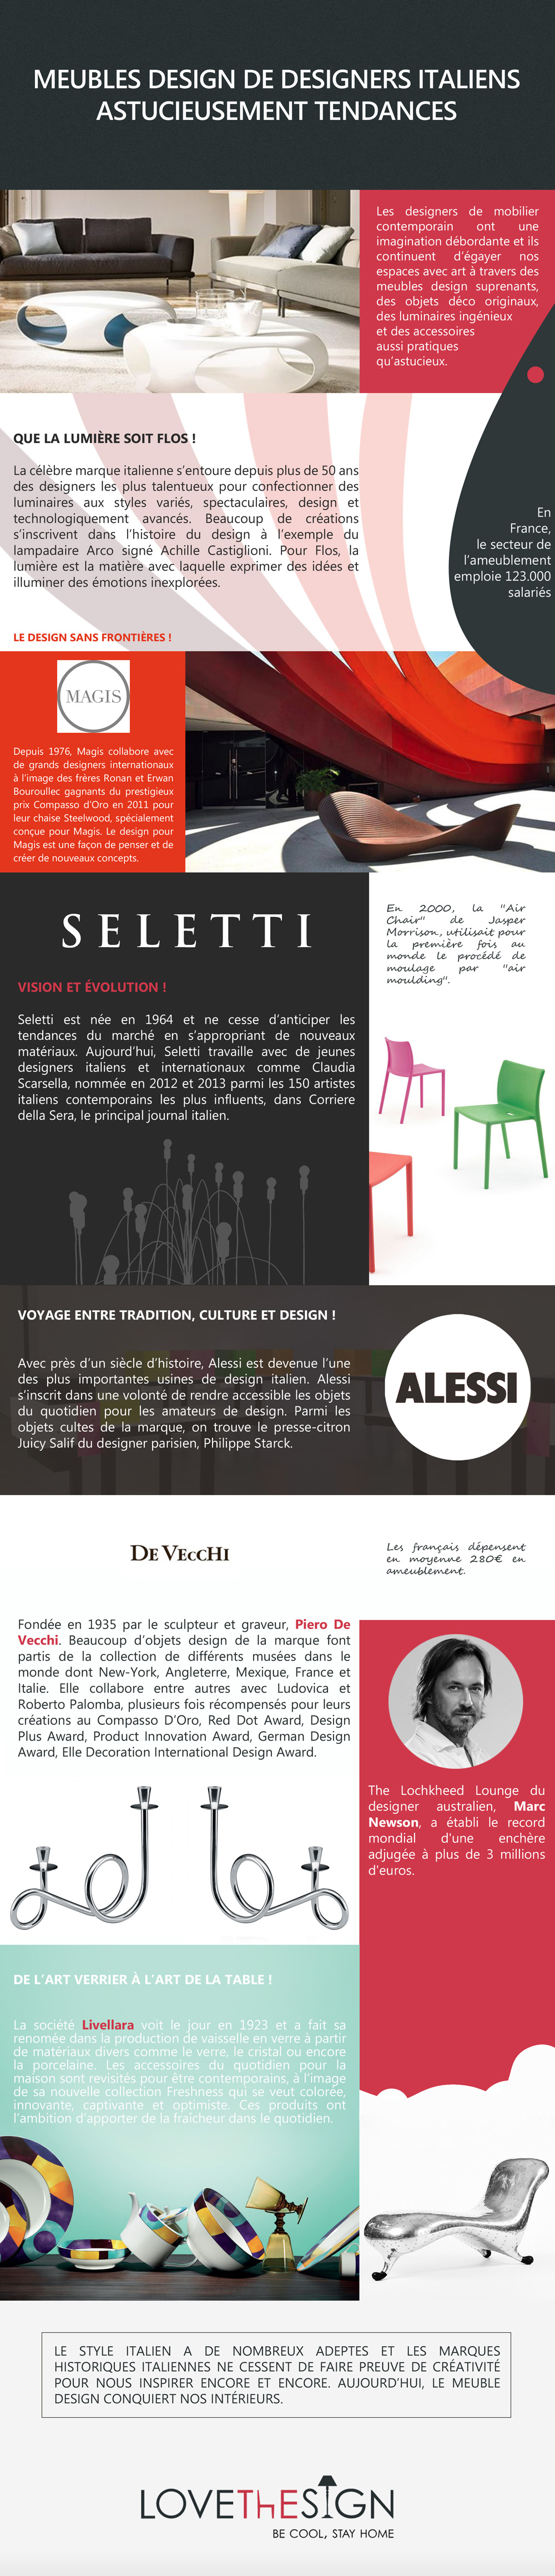 Infographic for Love the Sign, Fashions in Italian Furniture Design writen in French for sharing on social media